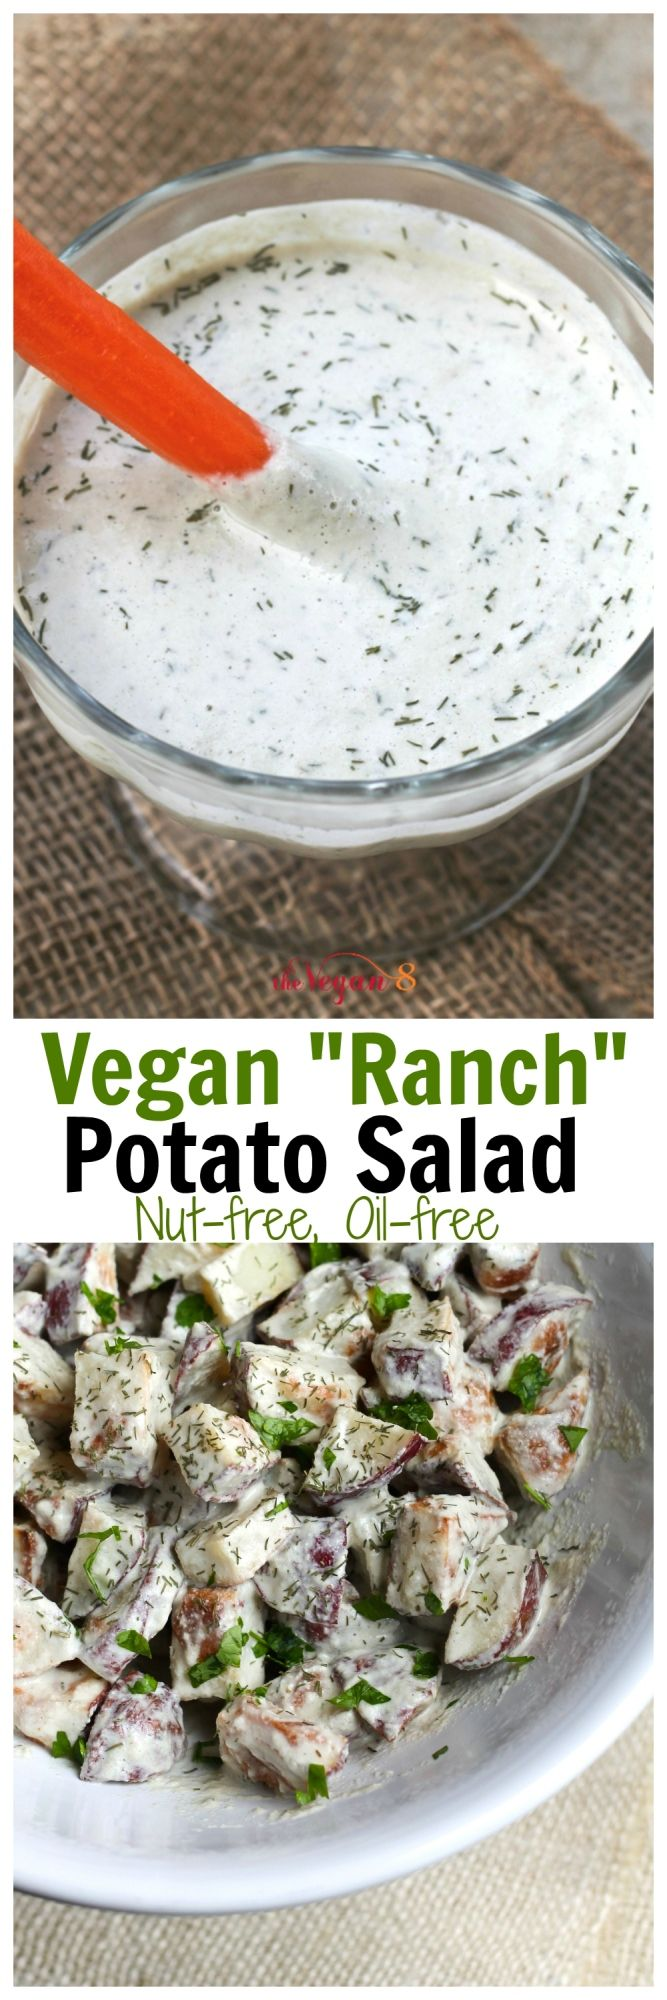 I've had several people ask me to come up with a ranch dressing recipe. Well, today is  your lucky day....and guess what, it is oil-free, soy-free AND nut-free! I think most vegan re...